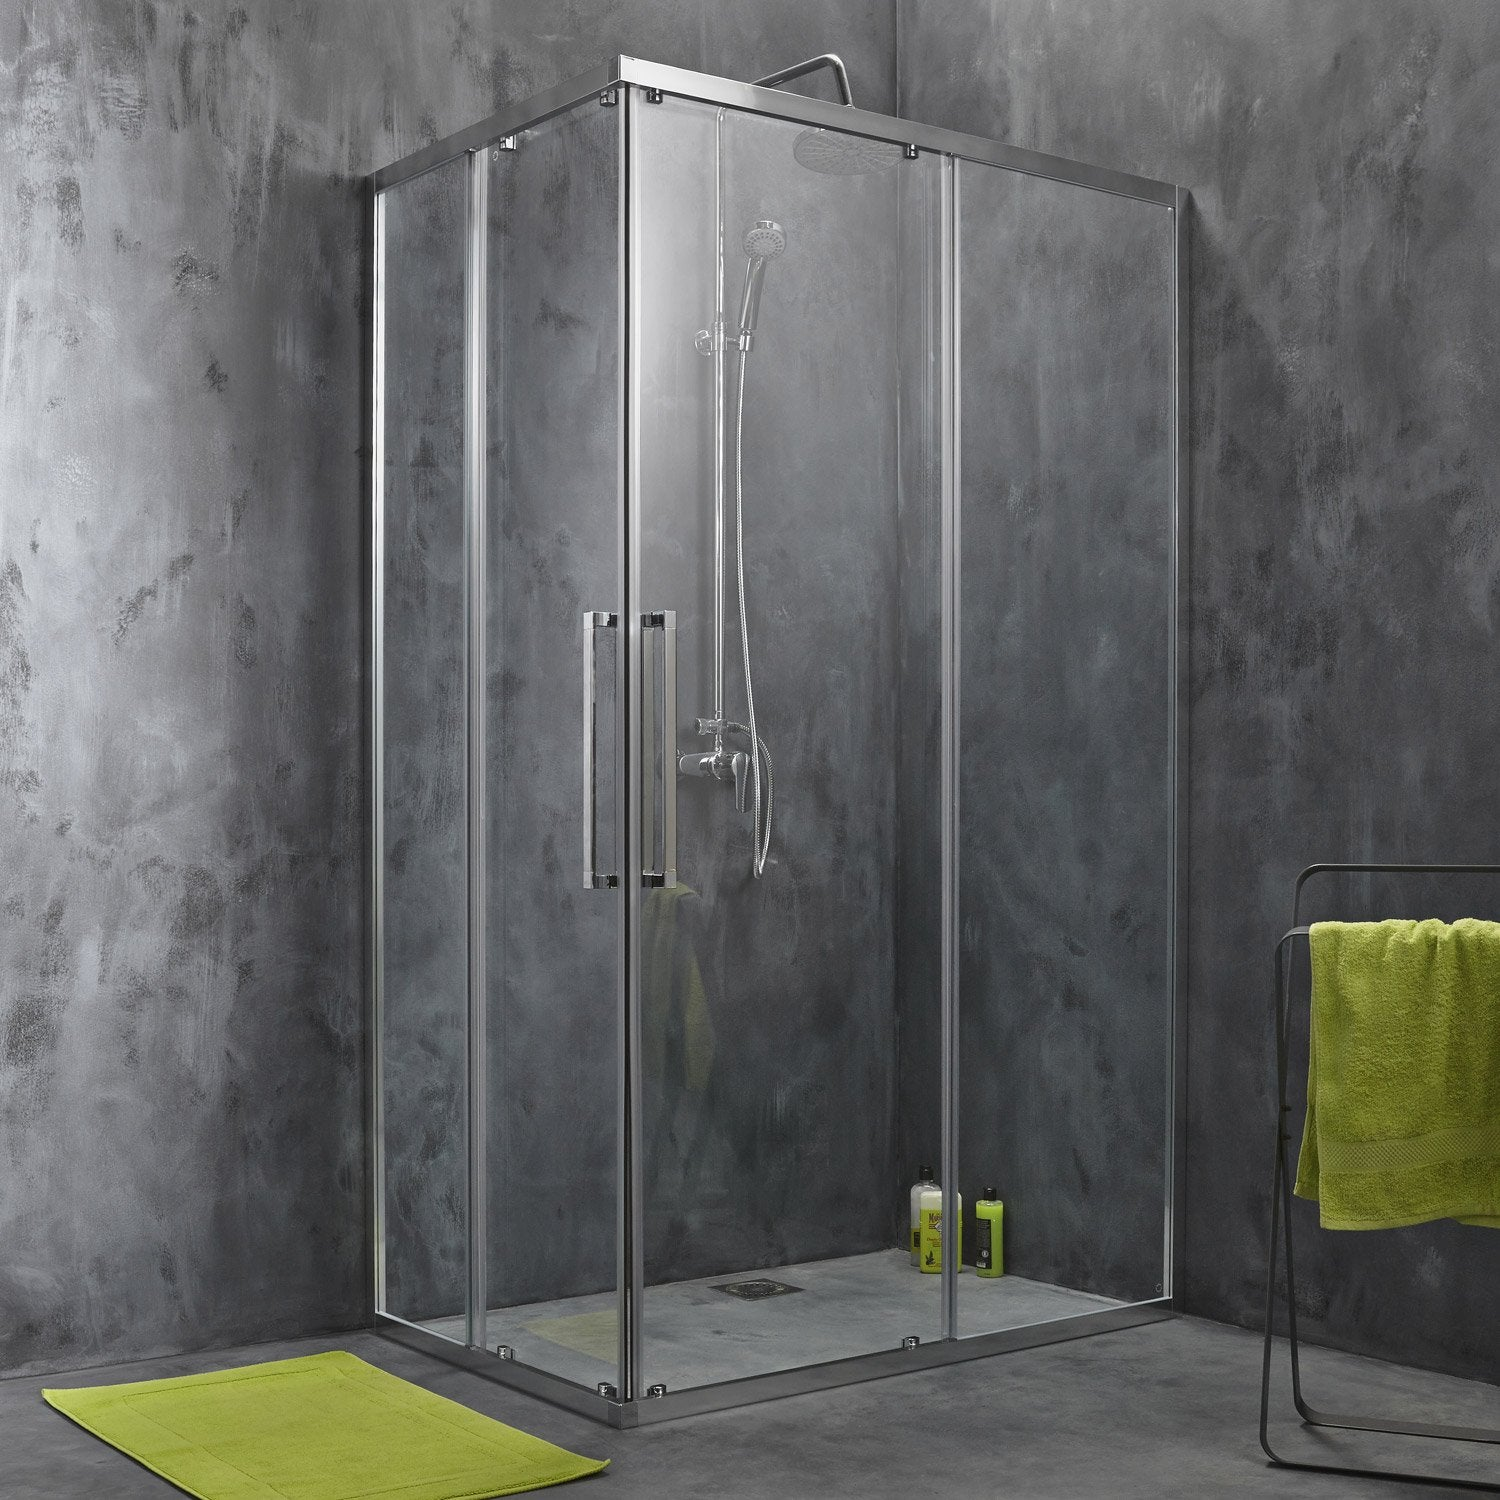 Porte de douche coulissante angle rectangle 120 x 80 cm - Tringle de porte leroy merlin ...